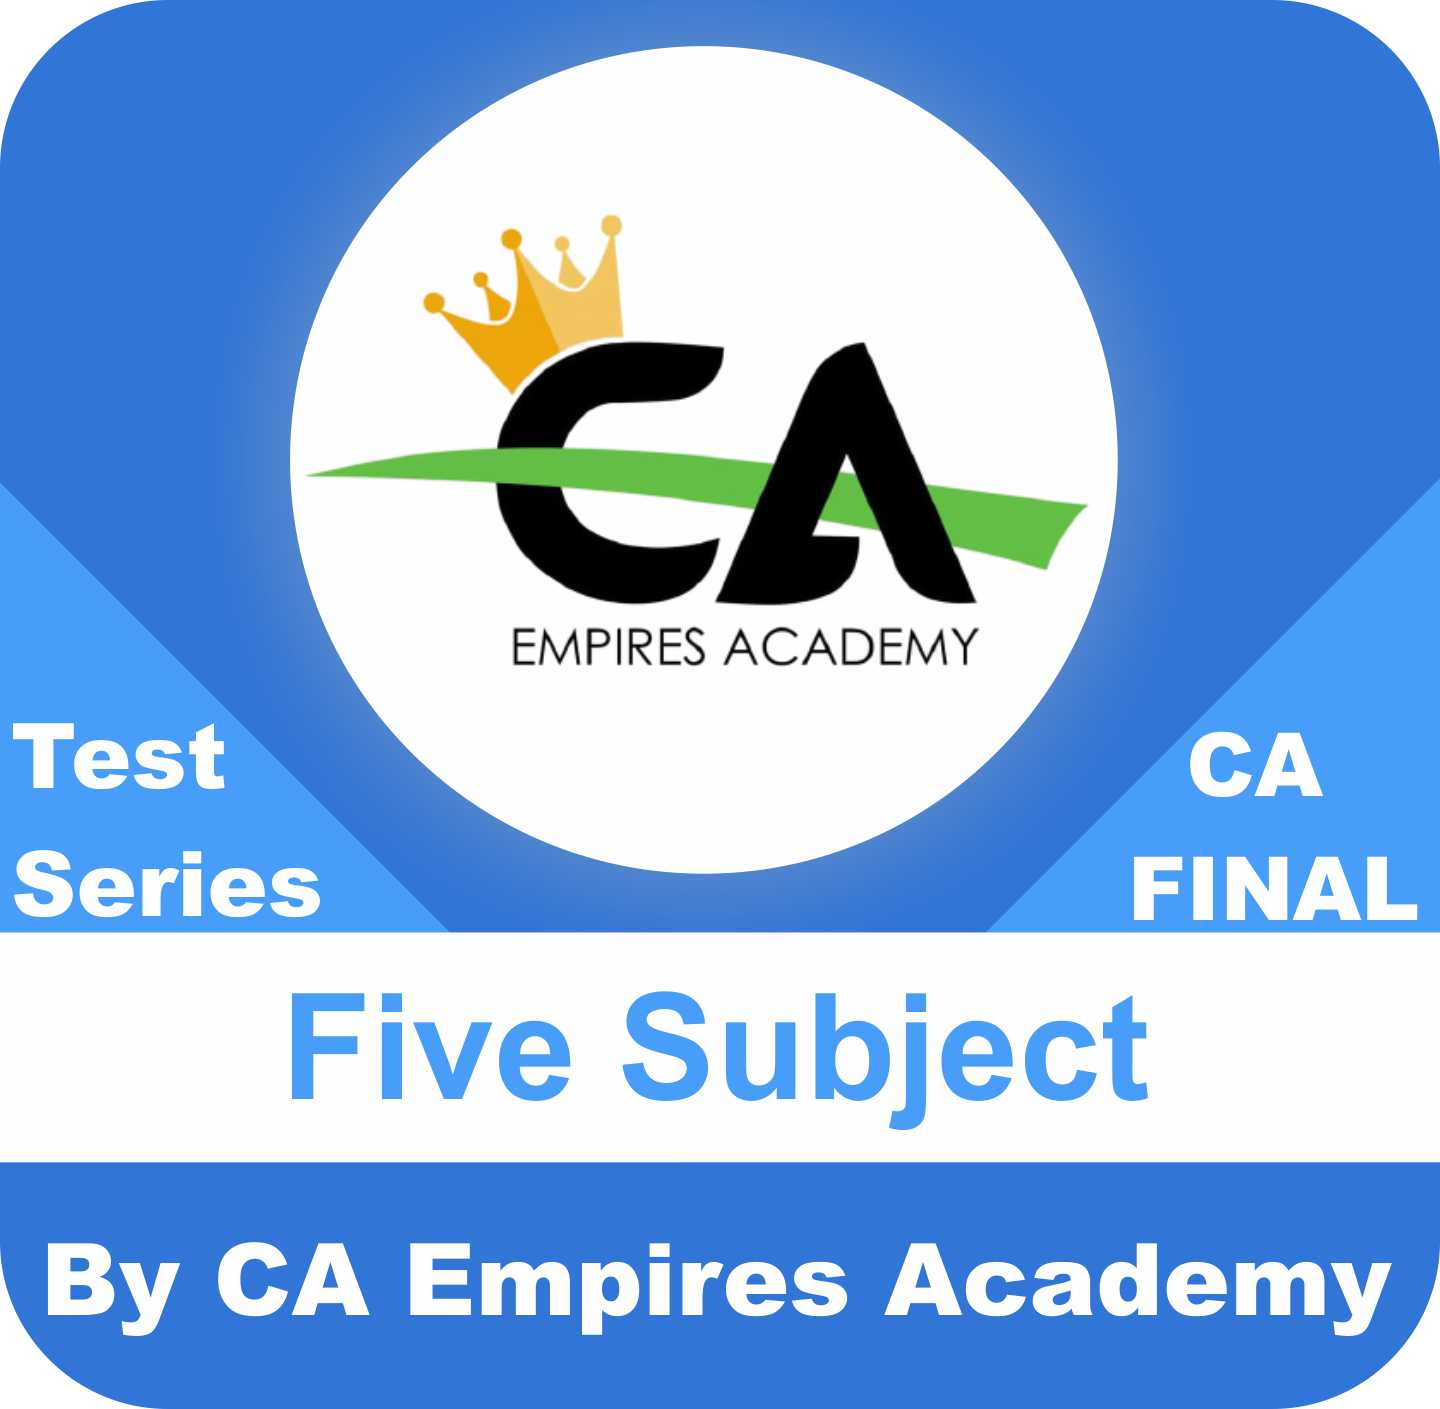 CA Final Any Five Subject Test Series in Platinum Plan by CA Empires Academy